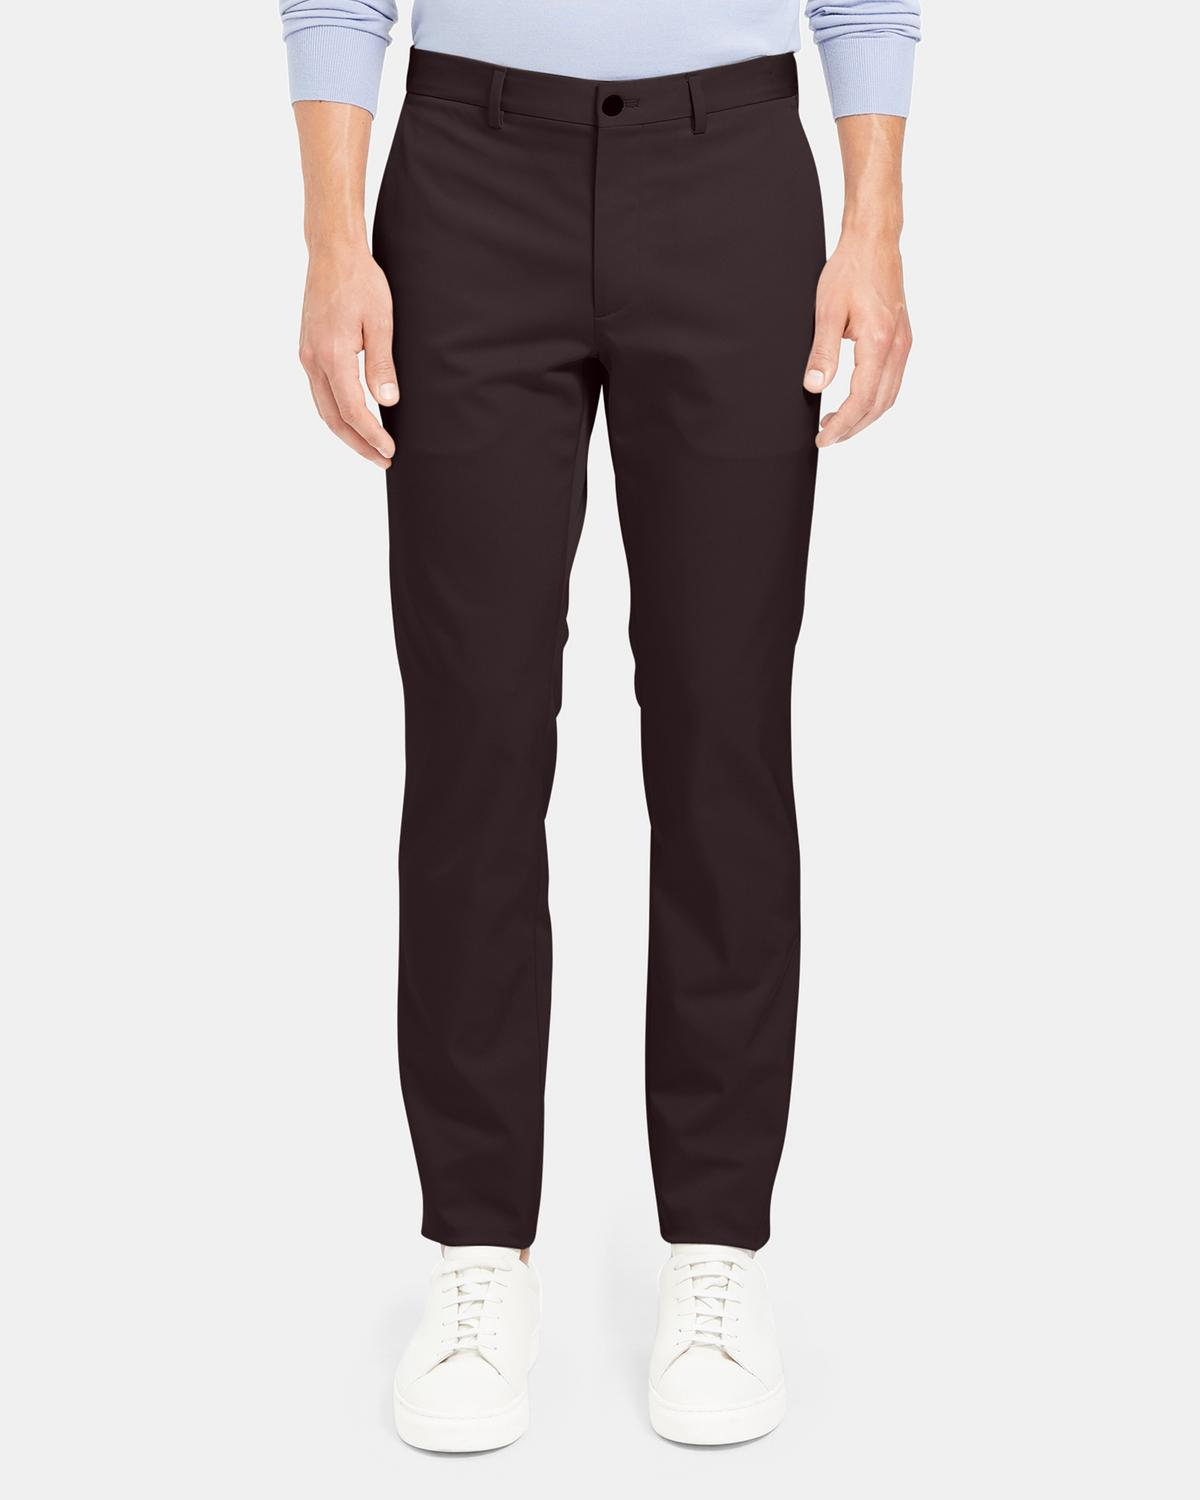 Zaine Pant in Technical Twill